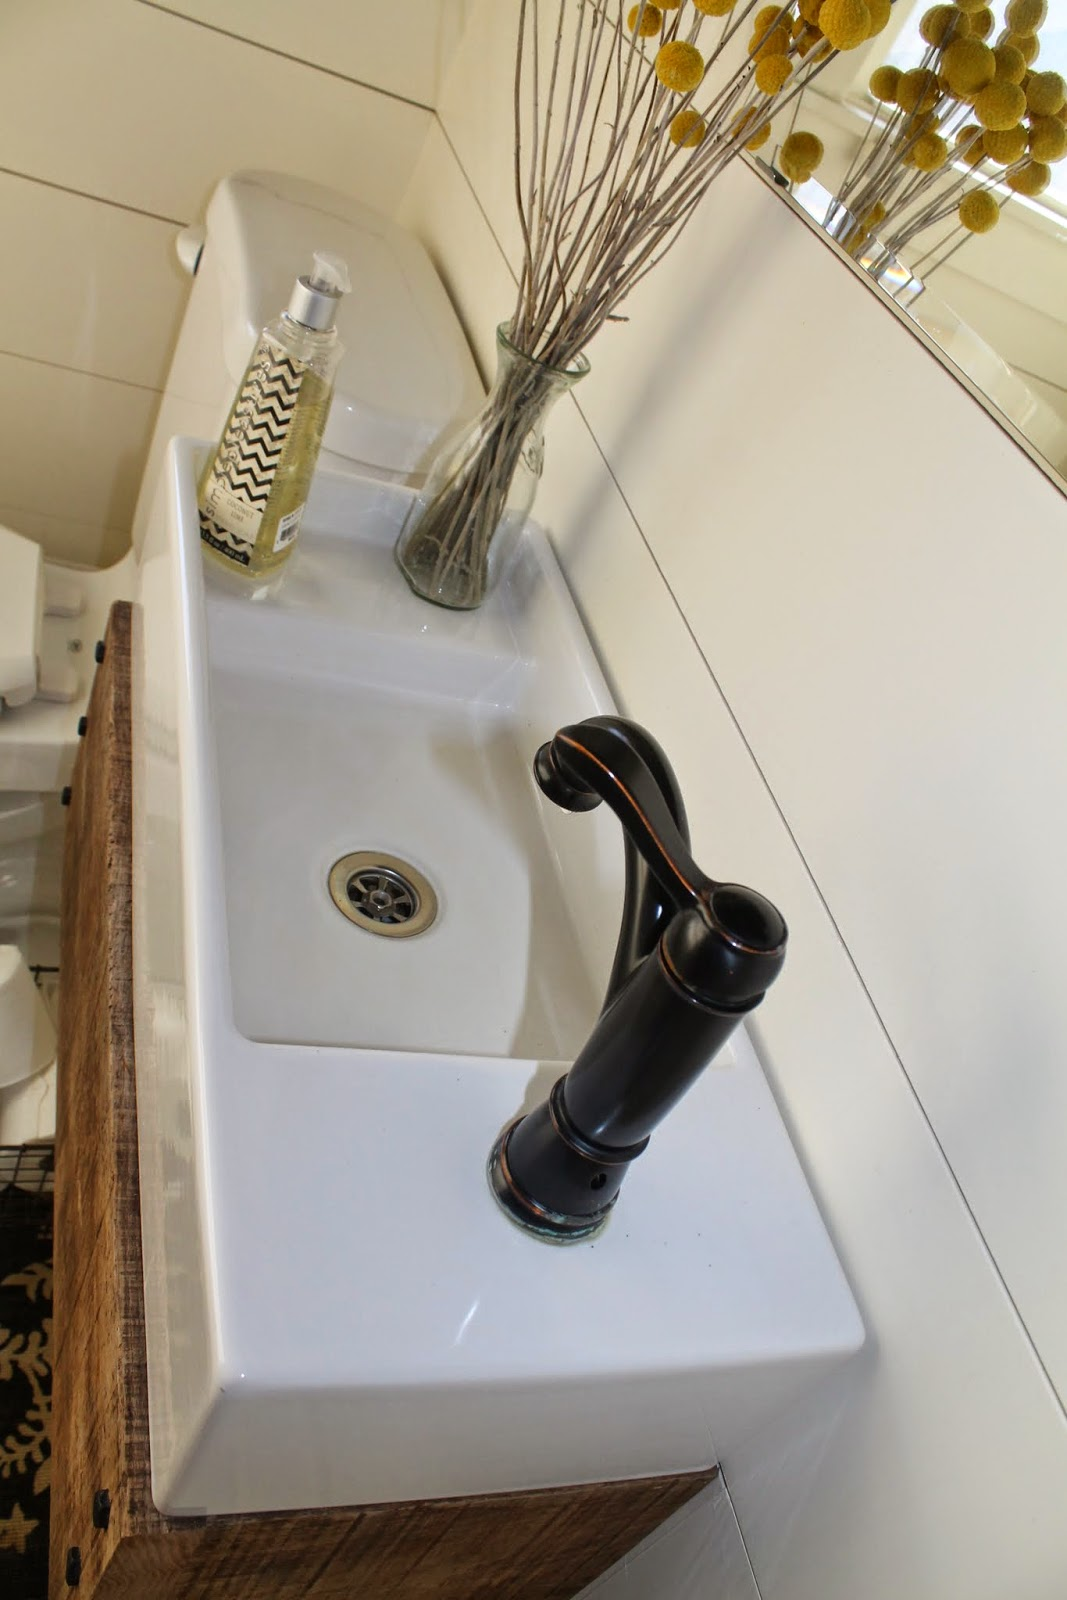 Diy Wood Floating Vanity With Farmhouse Sink   Girl Meets Carpenter  Featured On @Remodelaholic